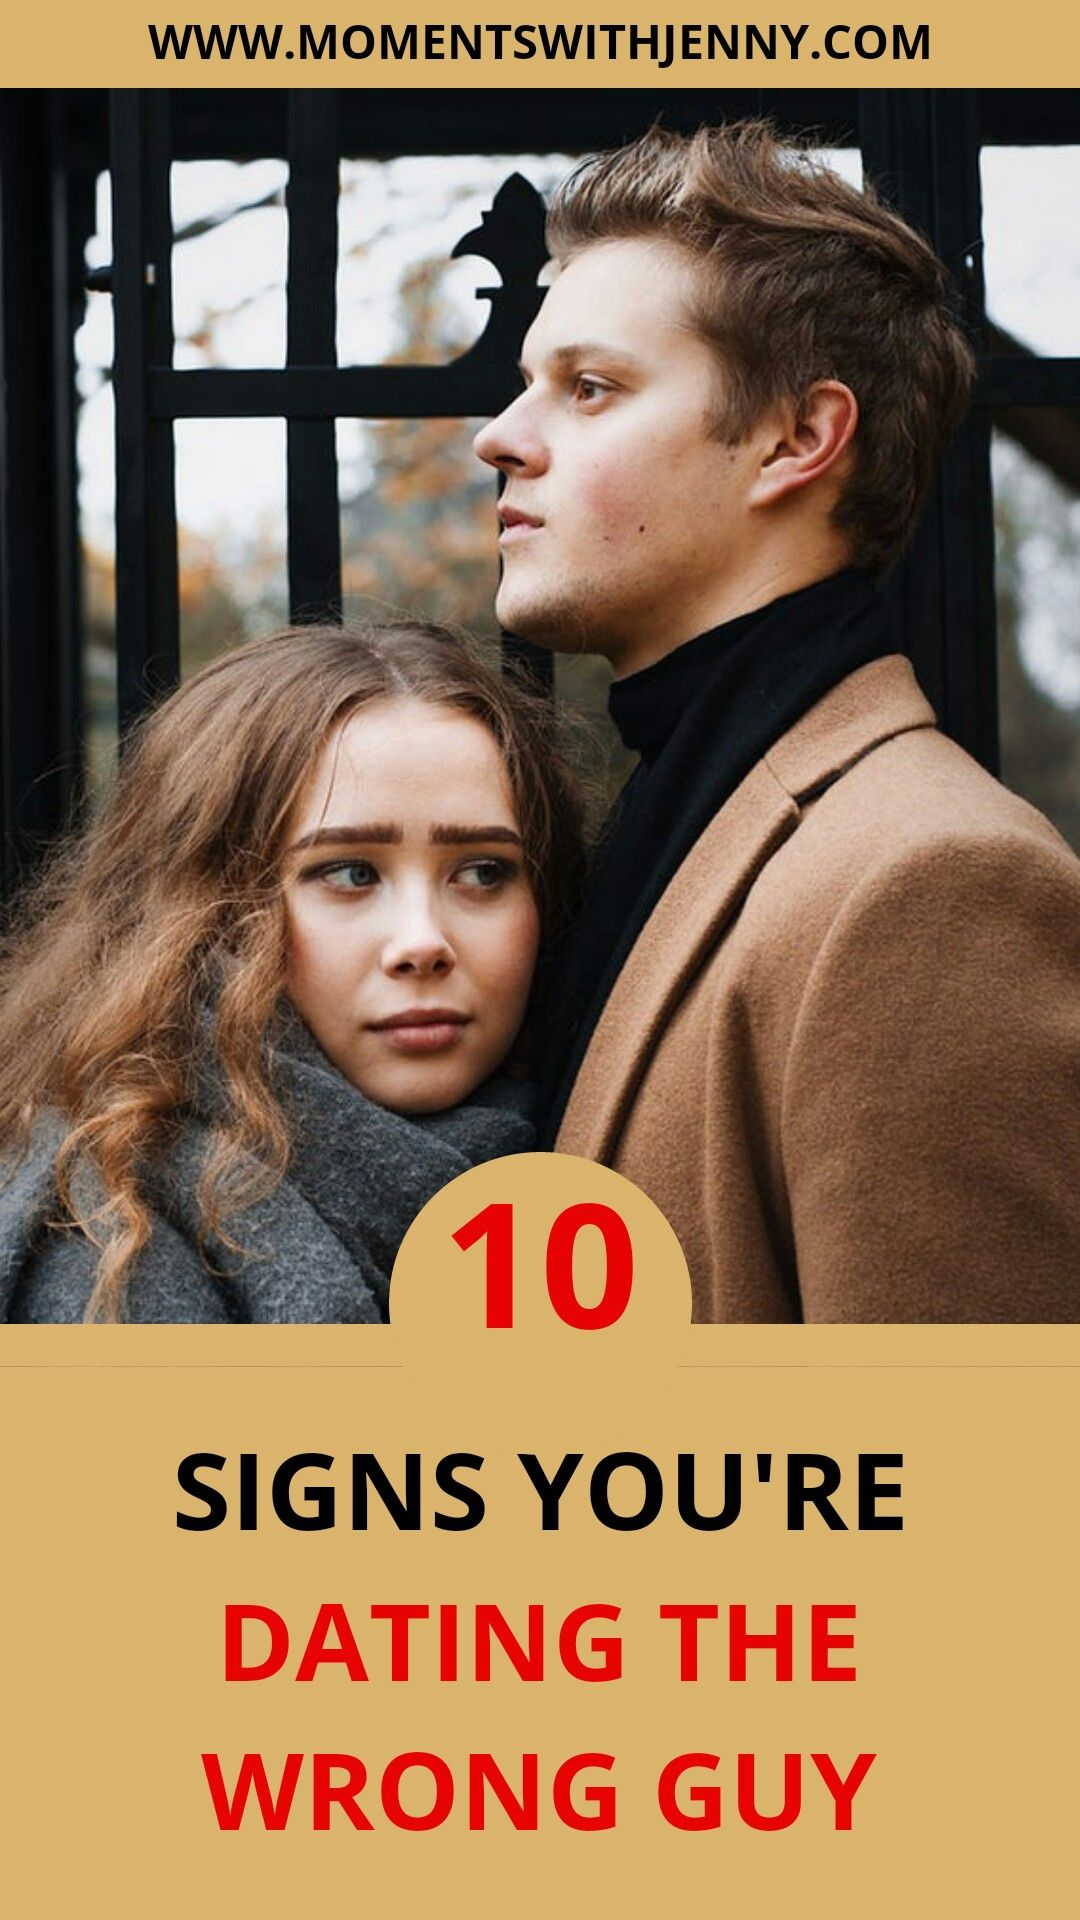 10 signs youre dating the wrong guy